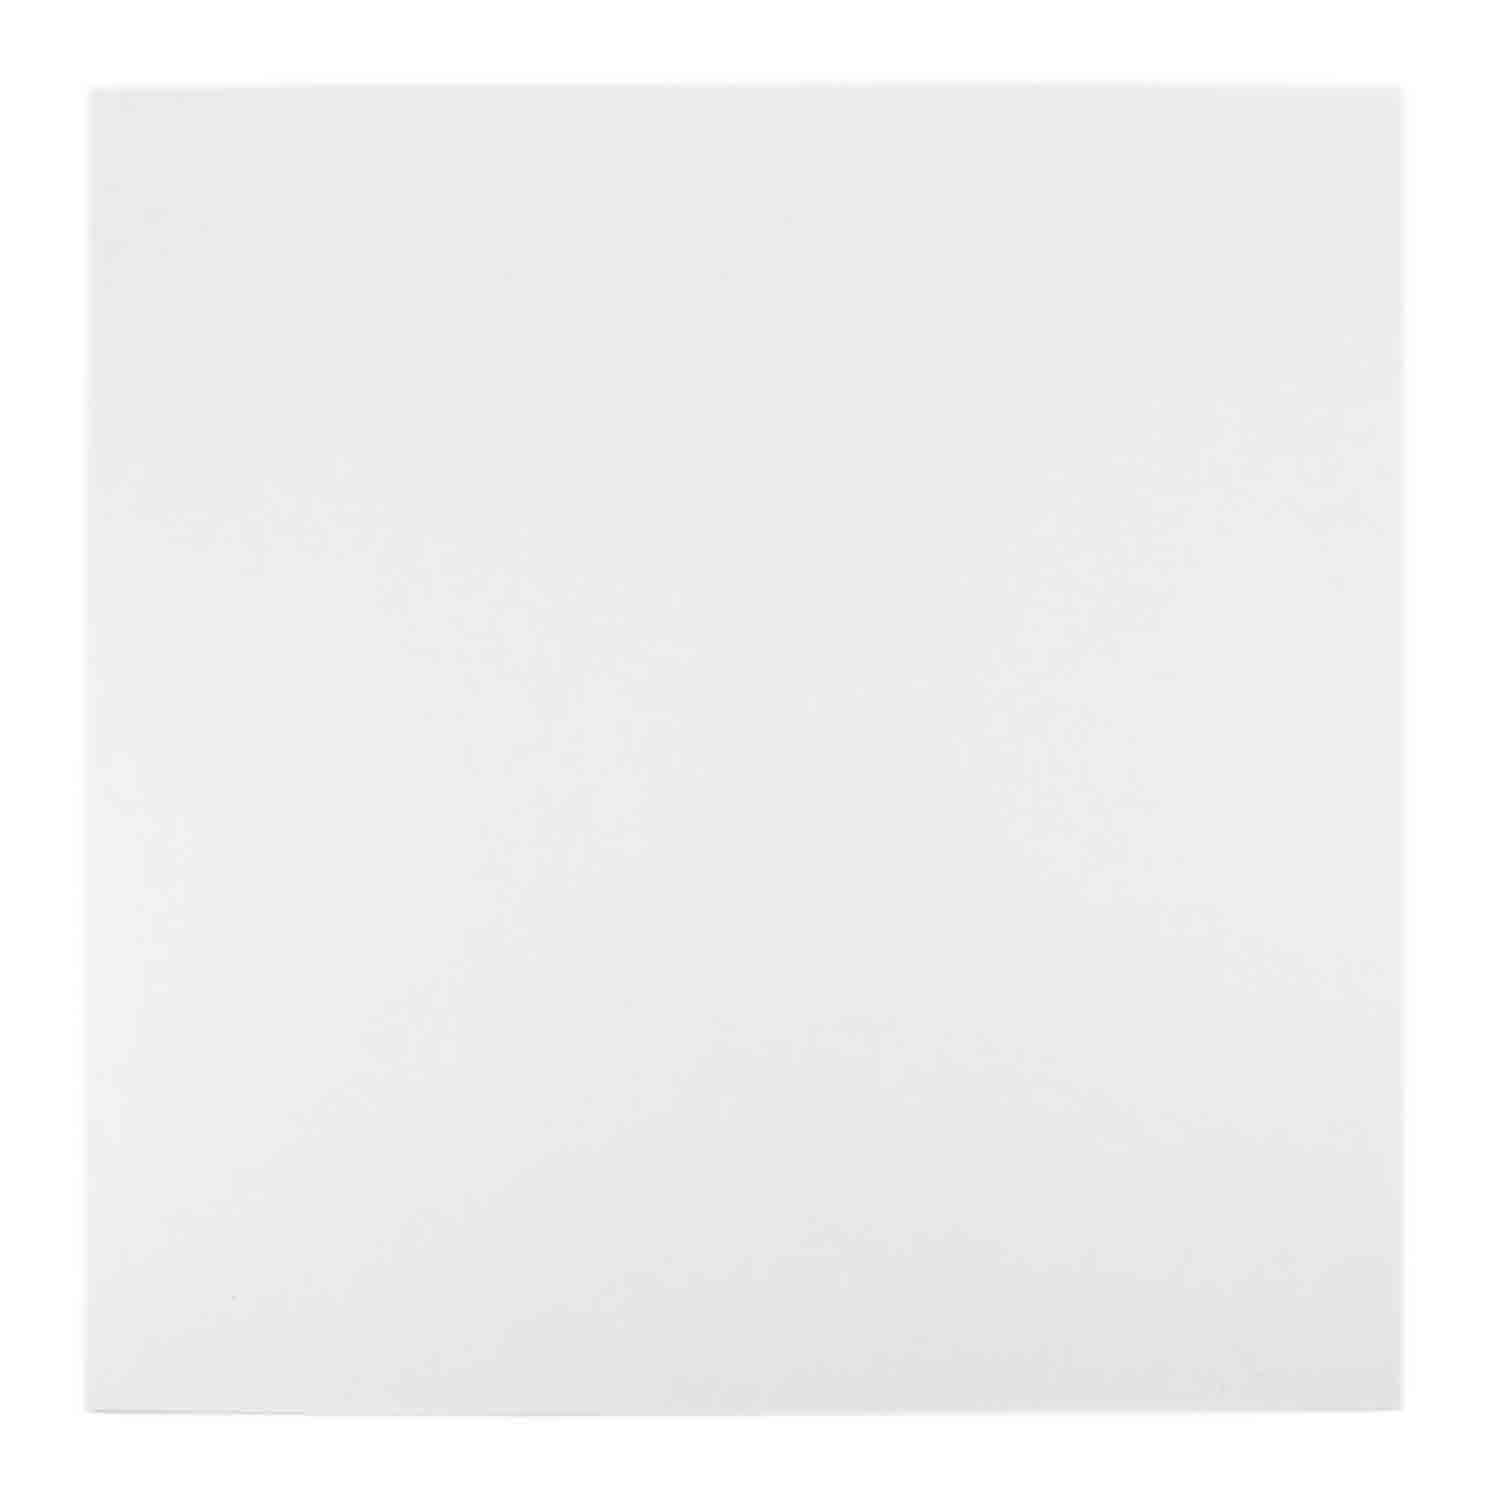 "10"" Square White Foil Sturdy Board"